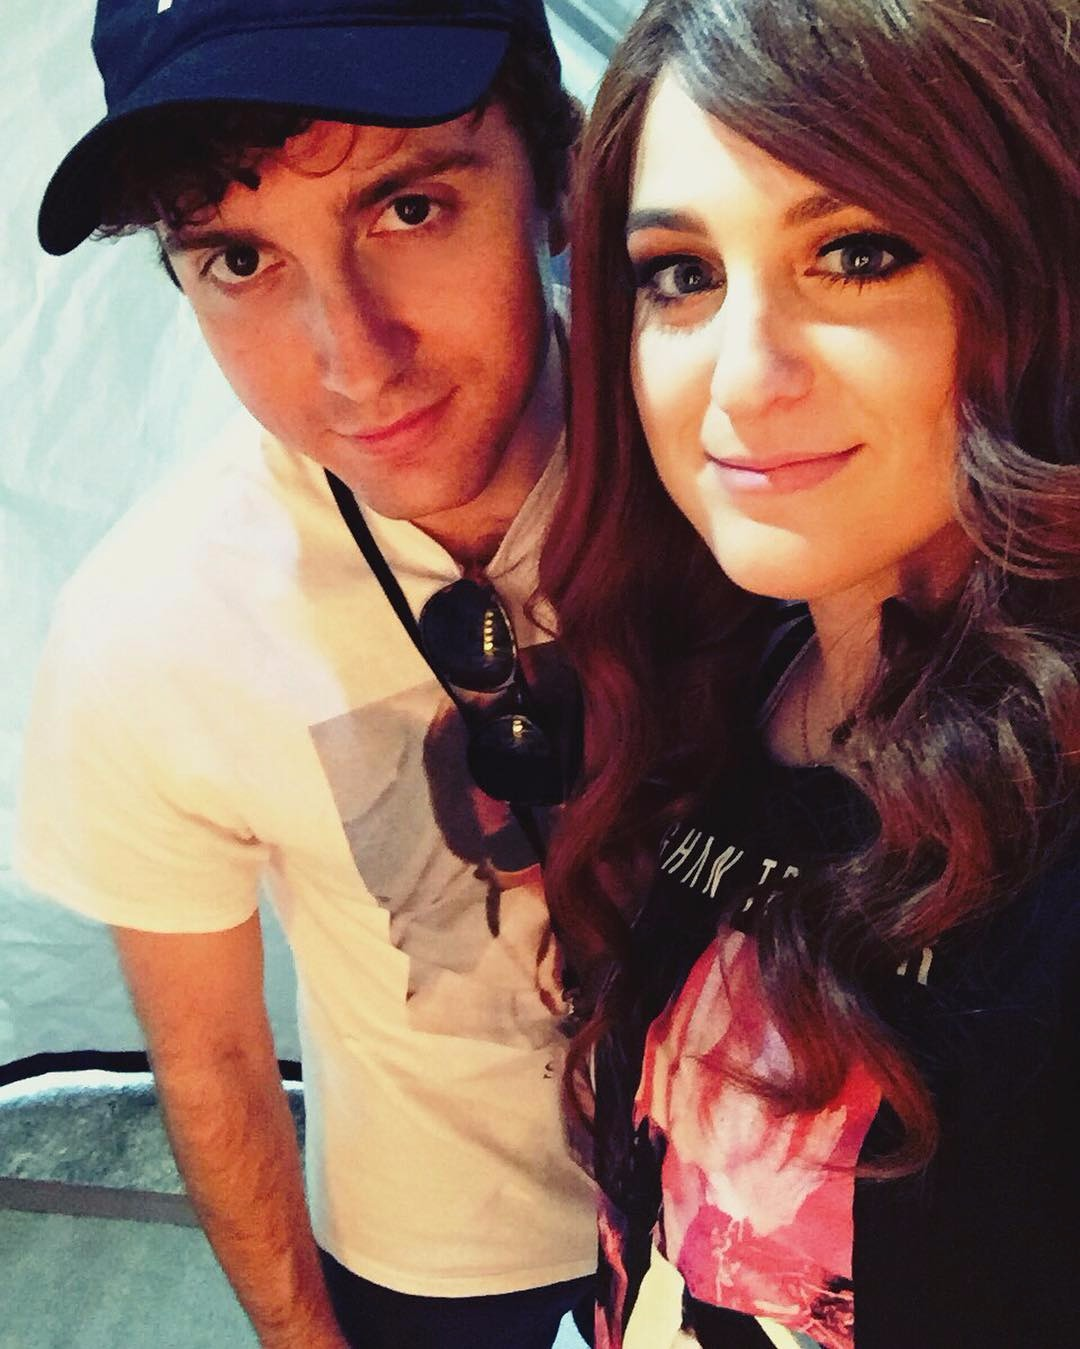 Meghan Trainor and her boyfriend Daryl Sabara giving modest smile to the camera.